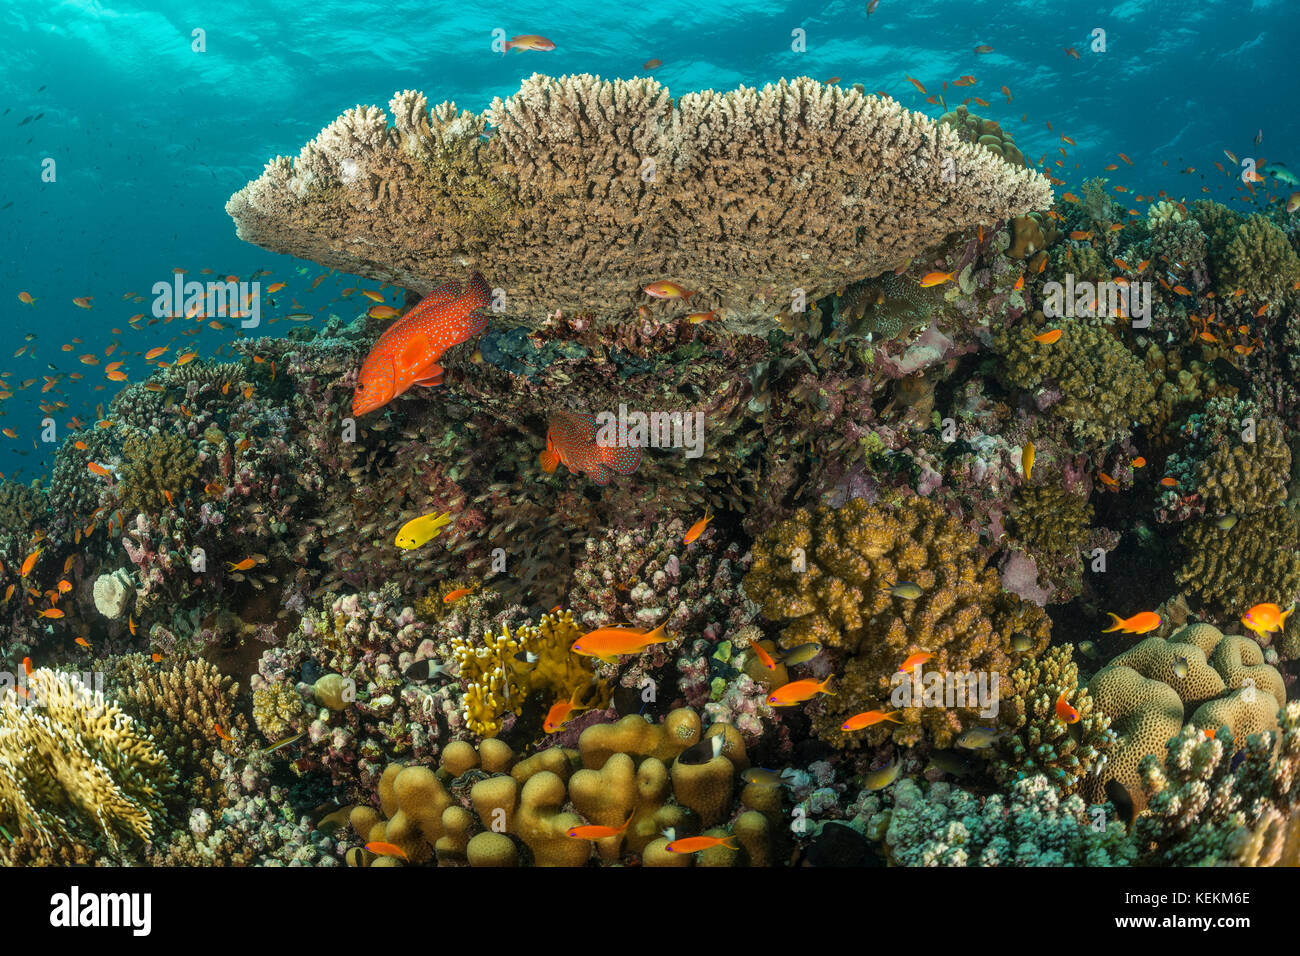 Healty Hard Coral Reef, Fury Shoal, Red Sea, Egypt - Stock Image